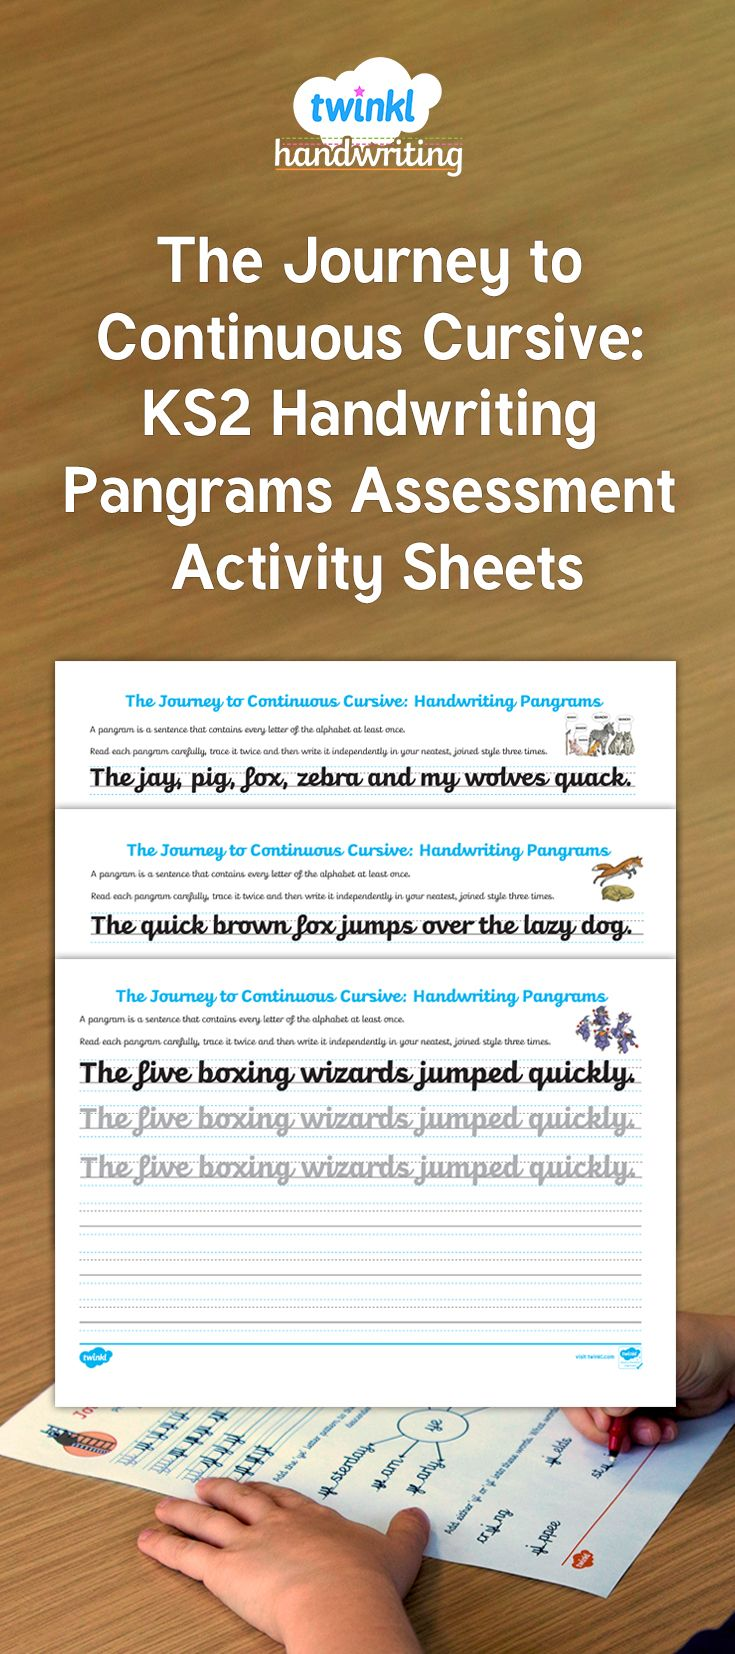 Use these handwriting pangram assessment activity sheets